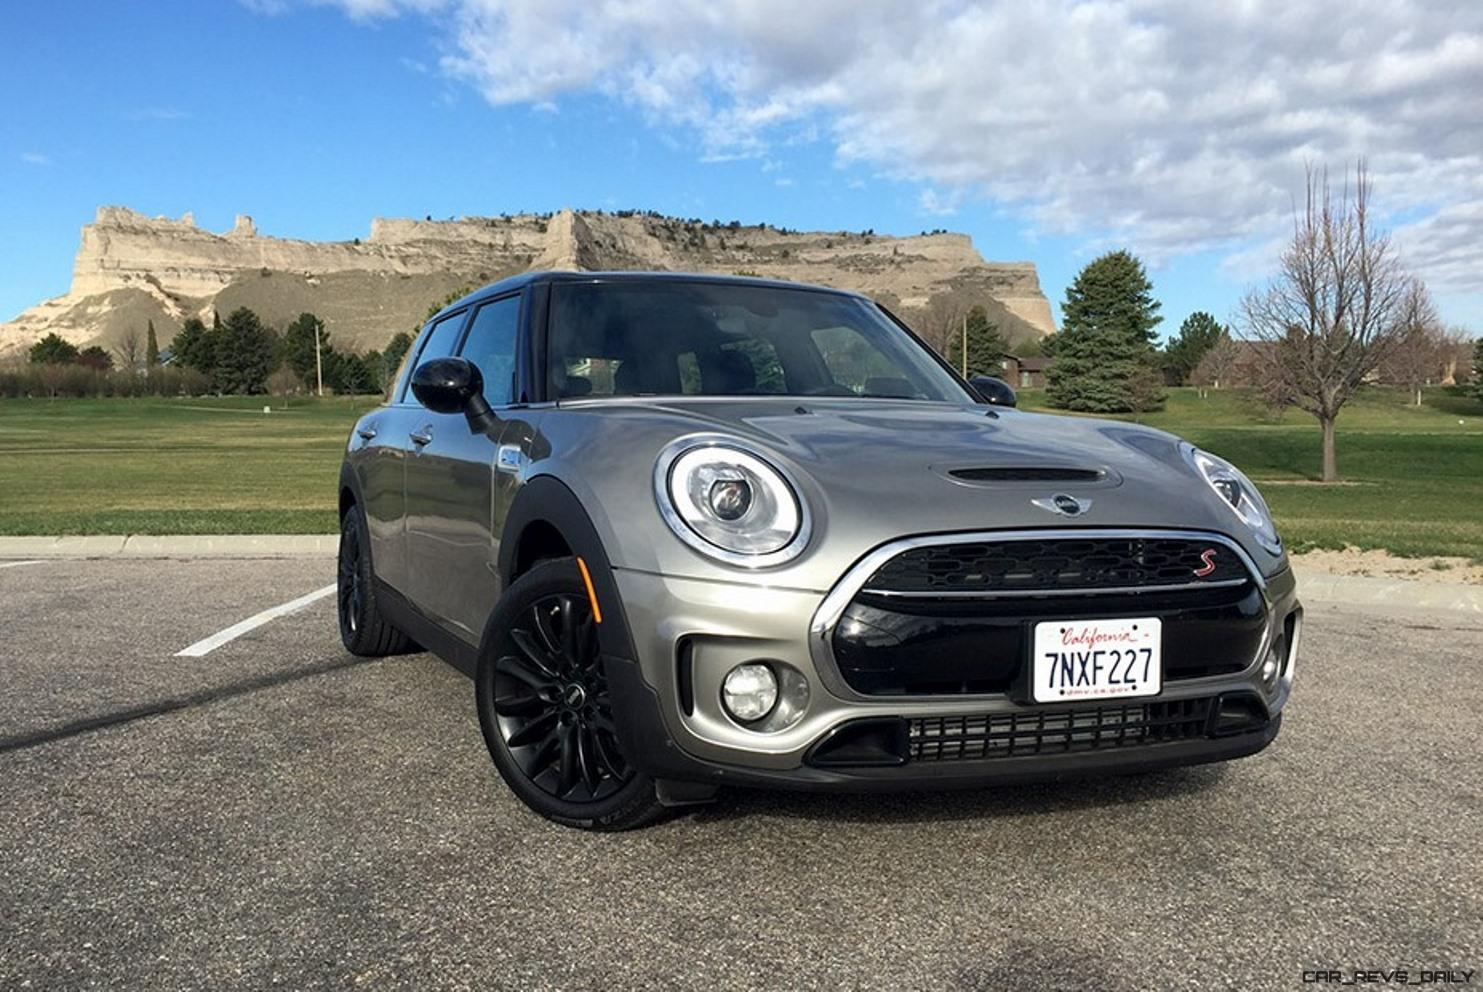 review 2016 mini cooper s clubman is unique sporty drive once inside cabin pickup truck. Black Bedroom Furniture Sets. Home Design Ideas